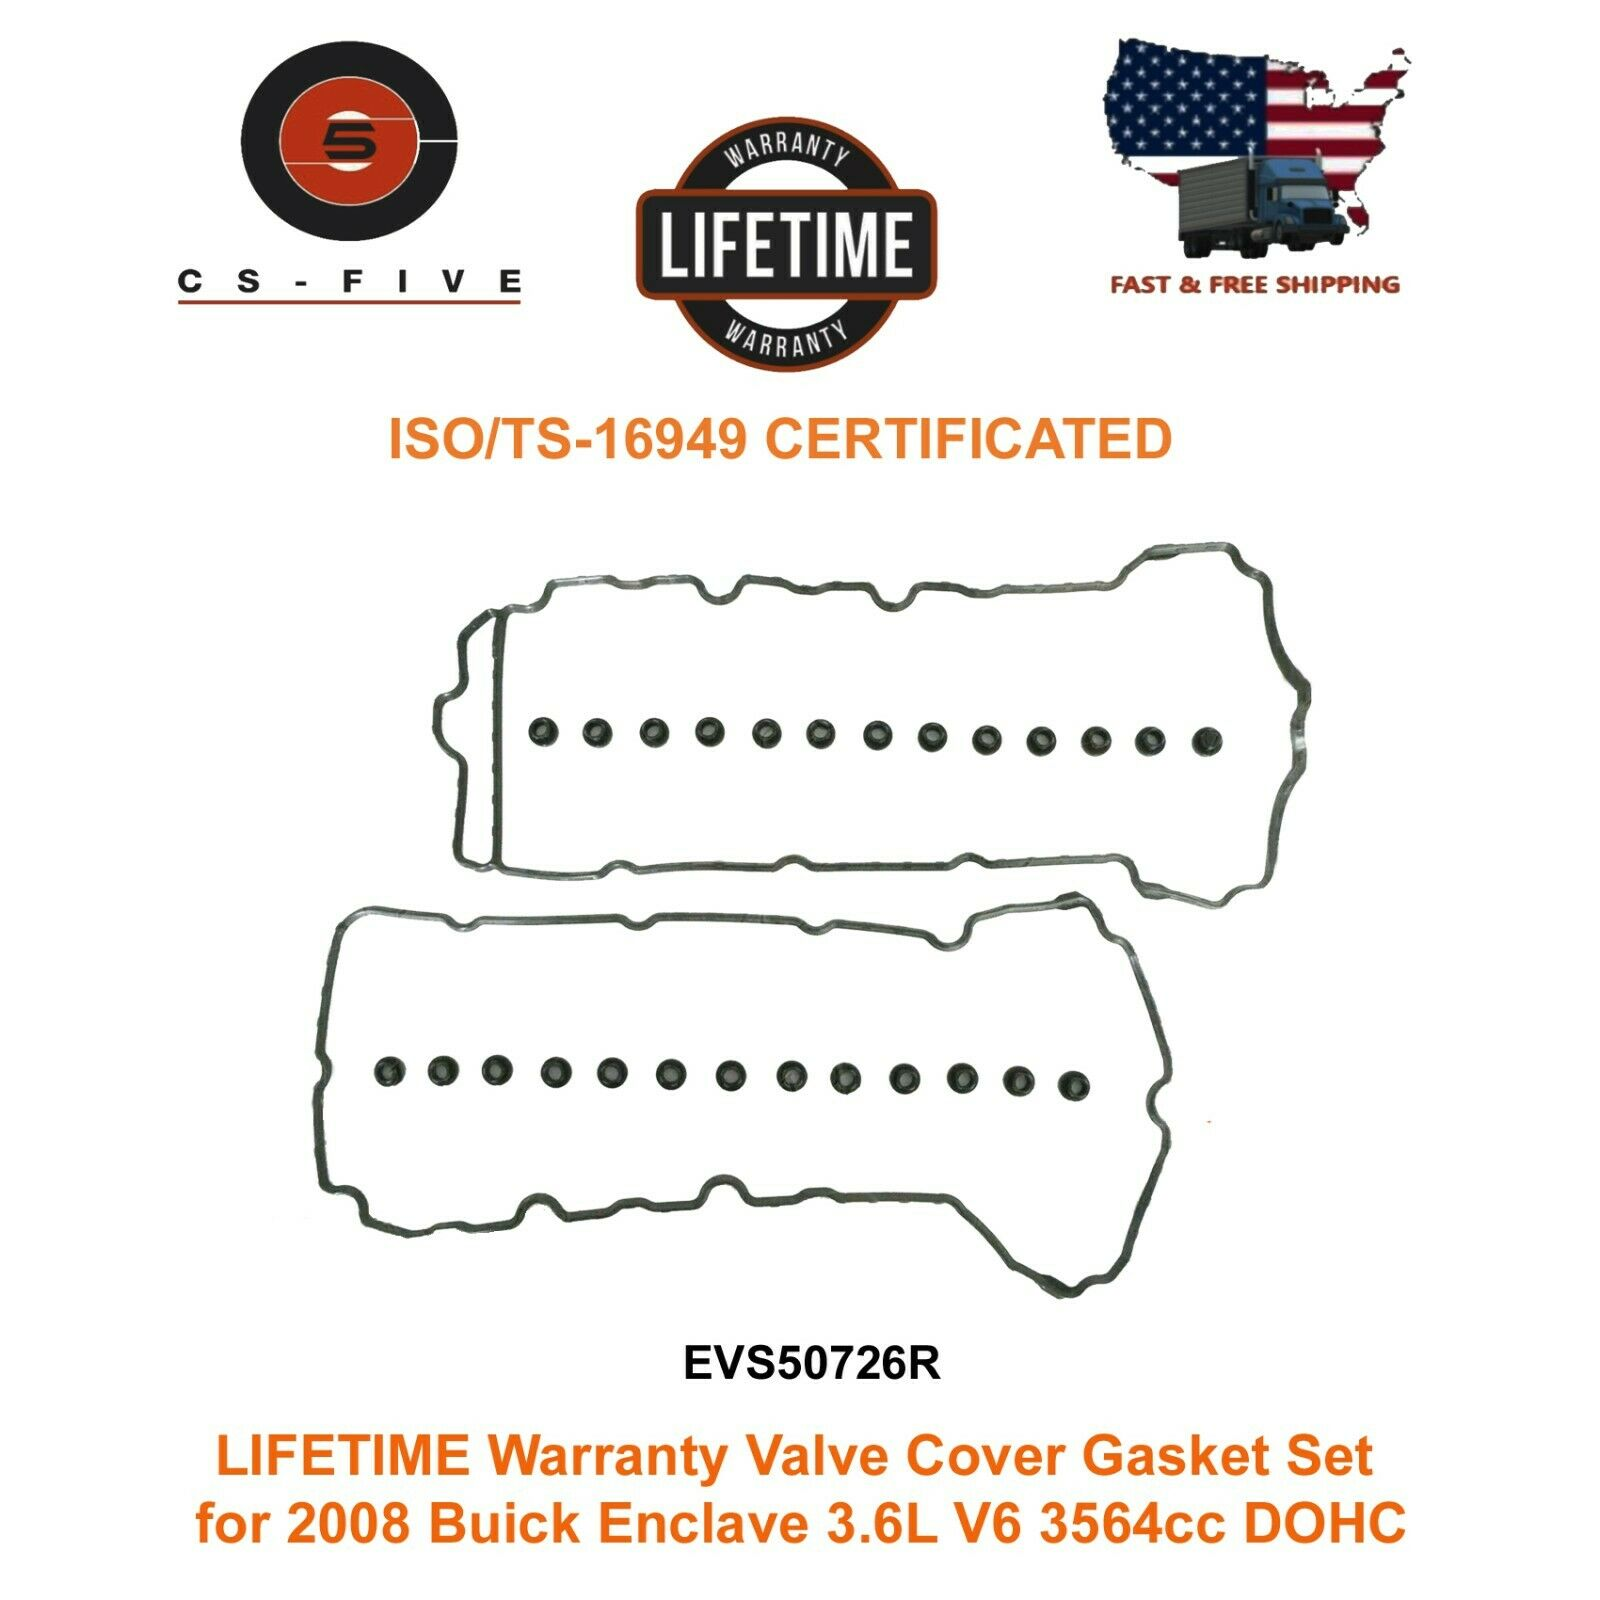 LIFETIME Warranty Valve Cover Gasket Set for 2008 Buick Enclave 3.6L V6 3564cc  VS50726R EVS50726R